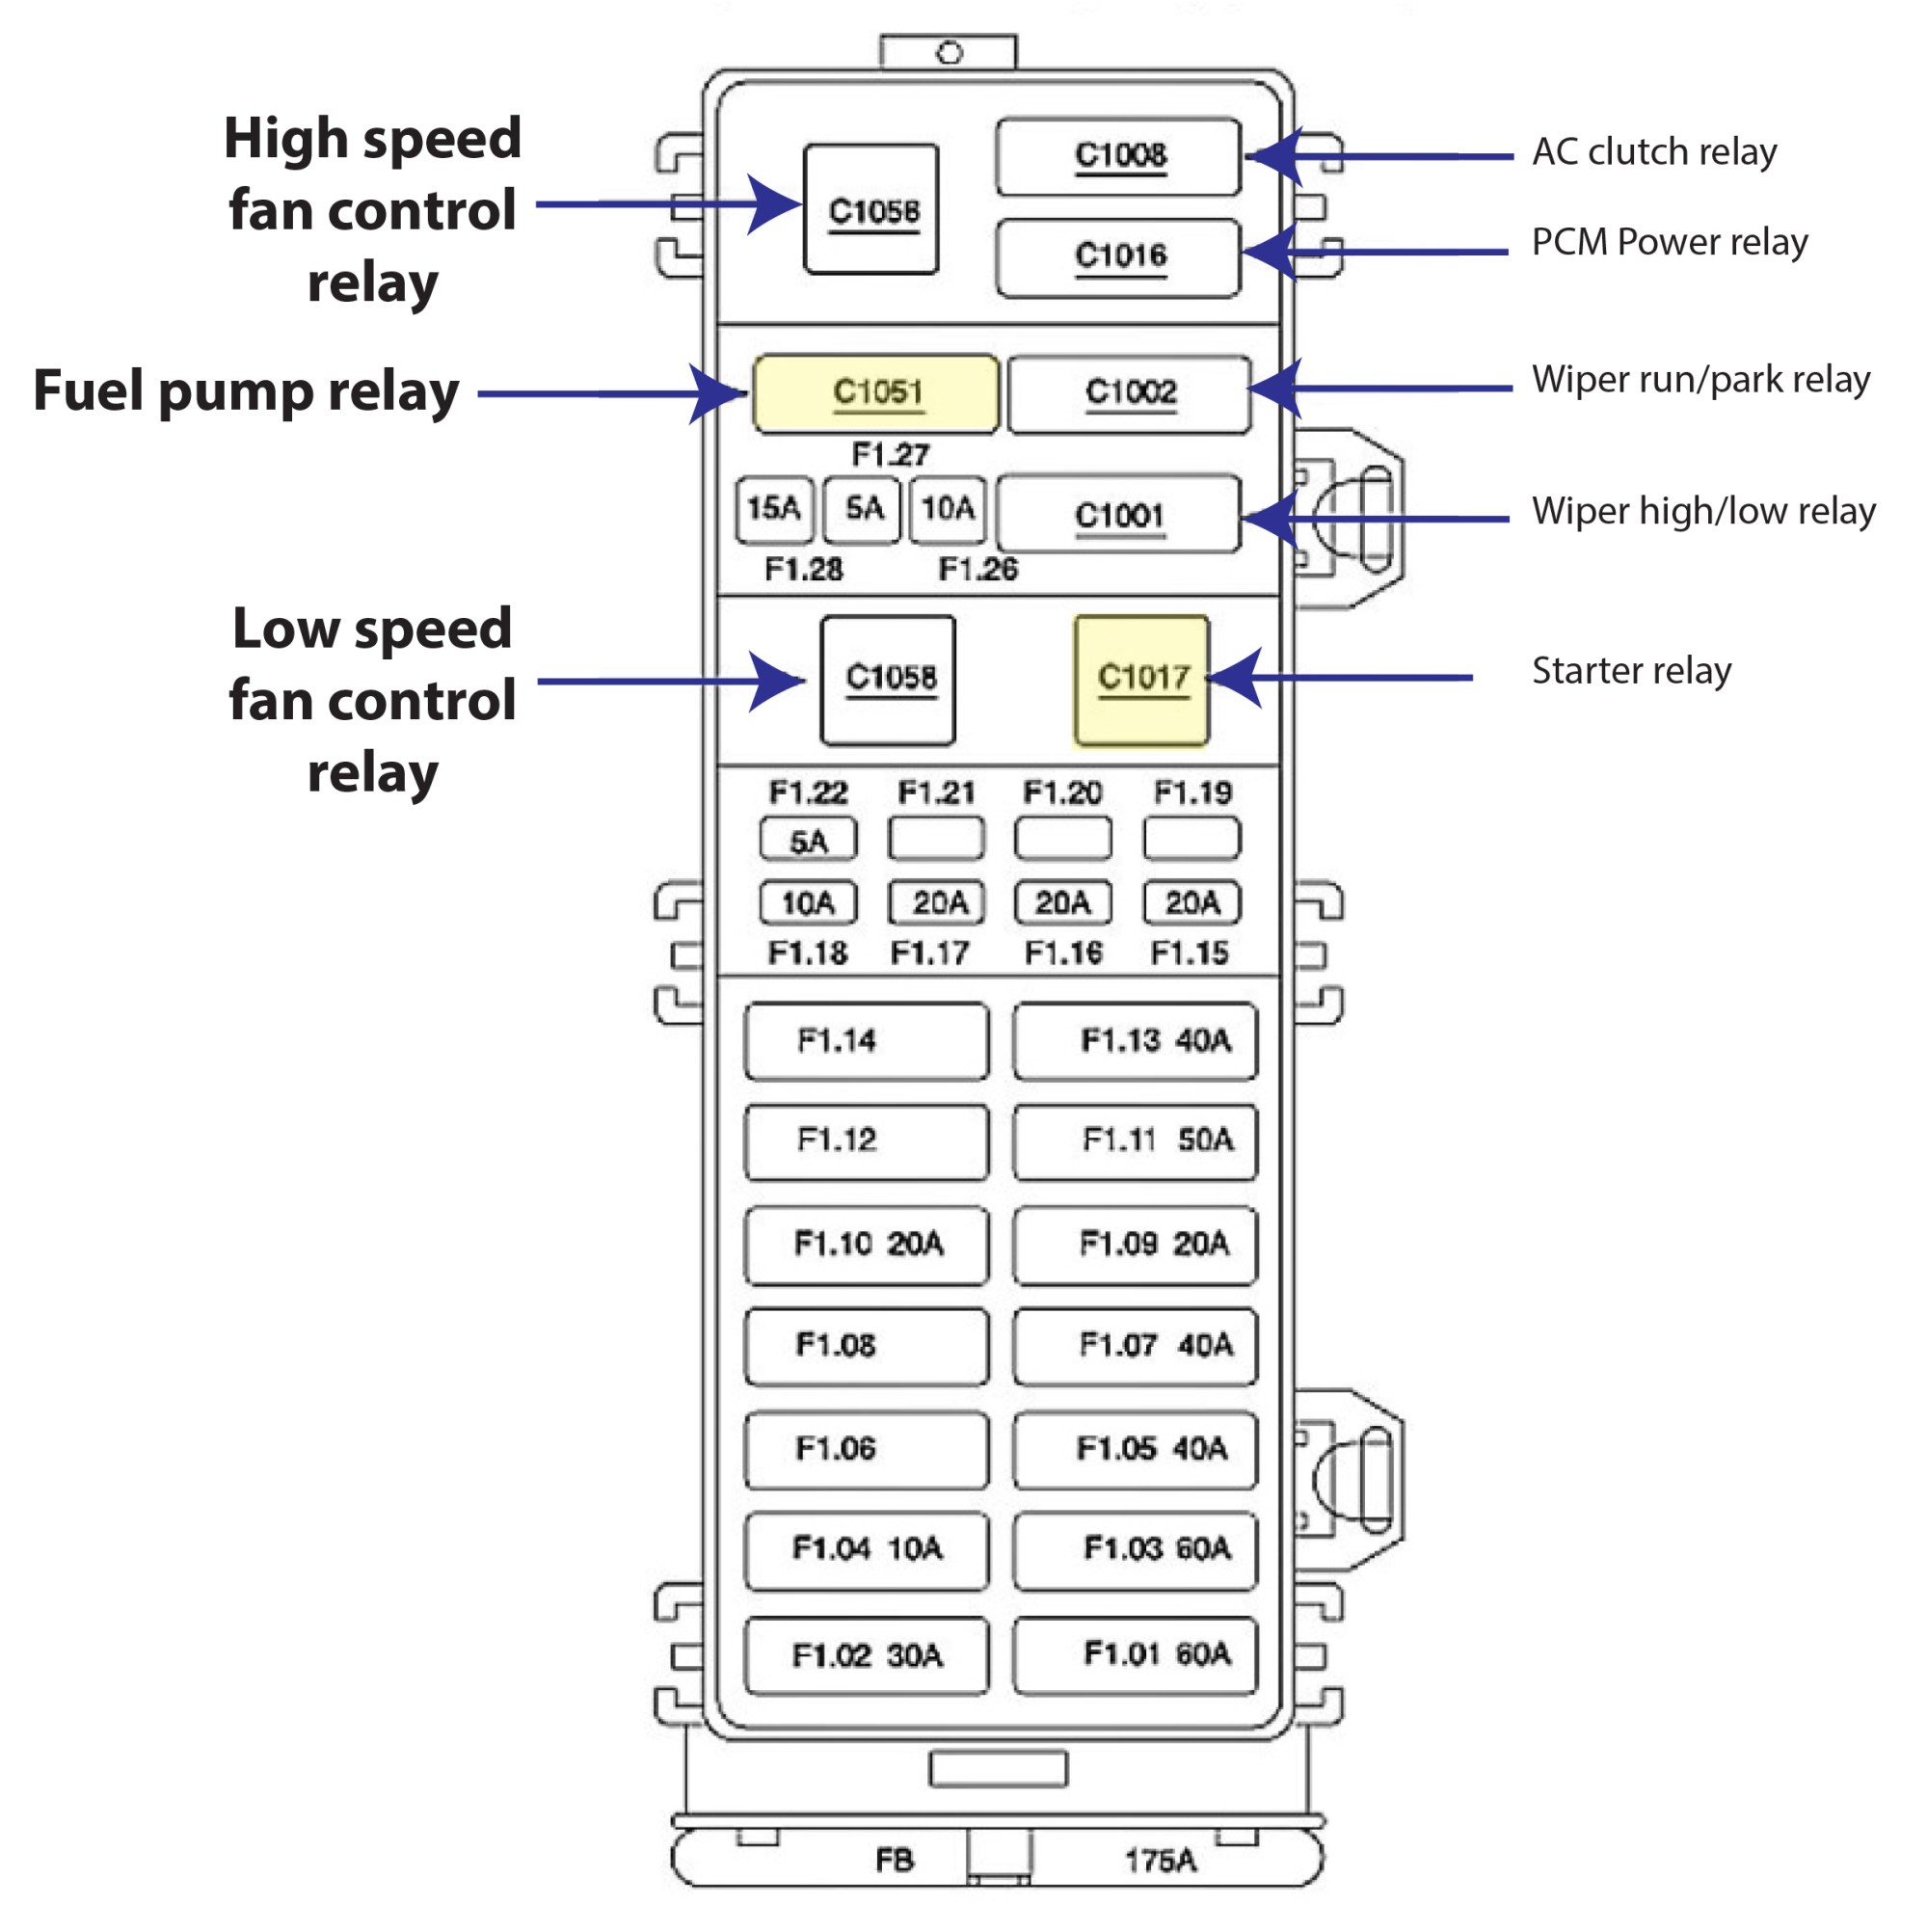 hight resolution of 2000 ford taurus fuse box air conditioner premium wiring diagram blog 2000 ford taurus a c clutch wiring diagram